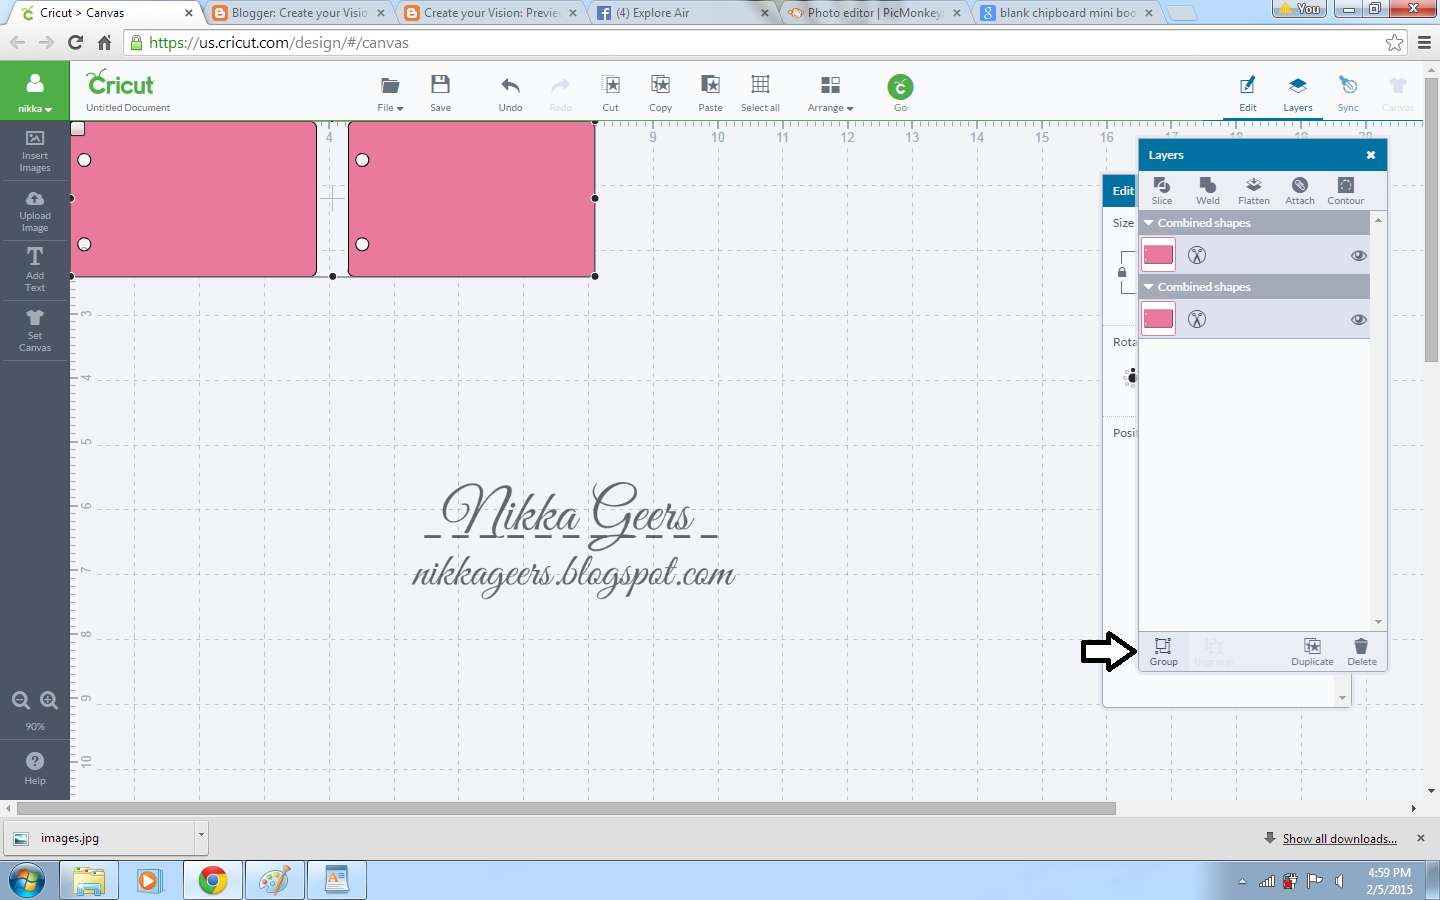 cricut how to change grid size